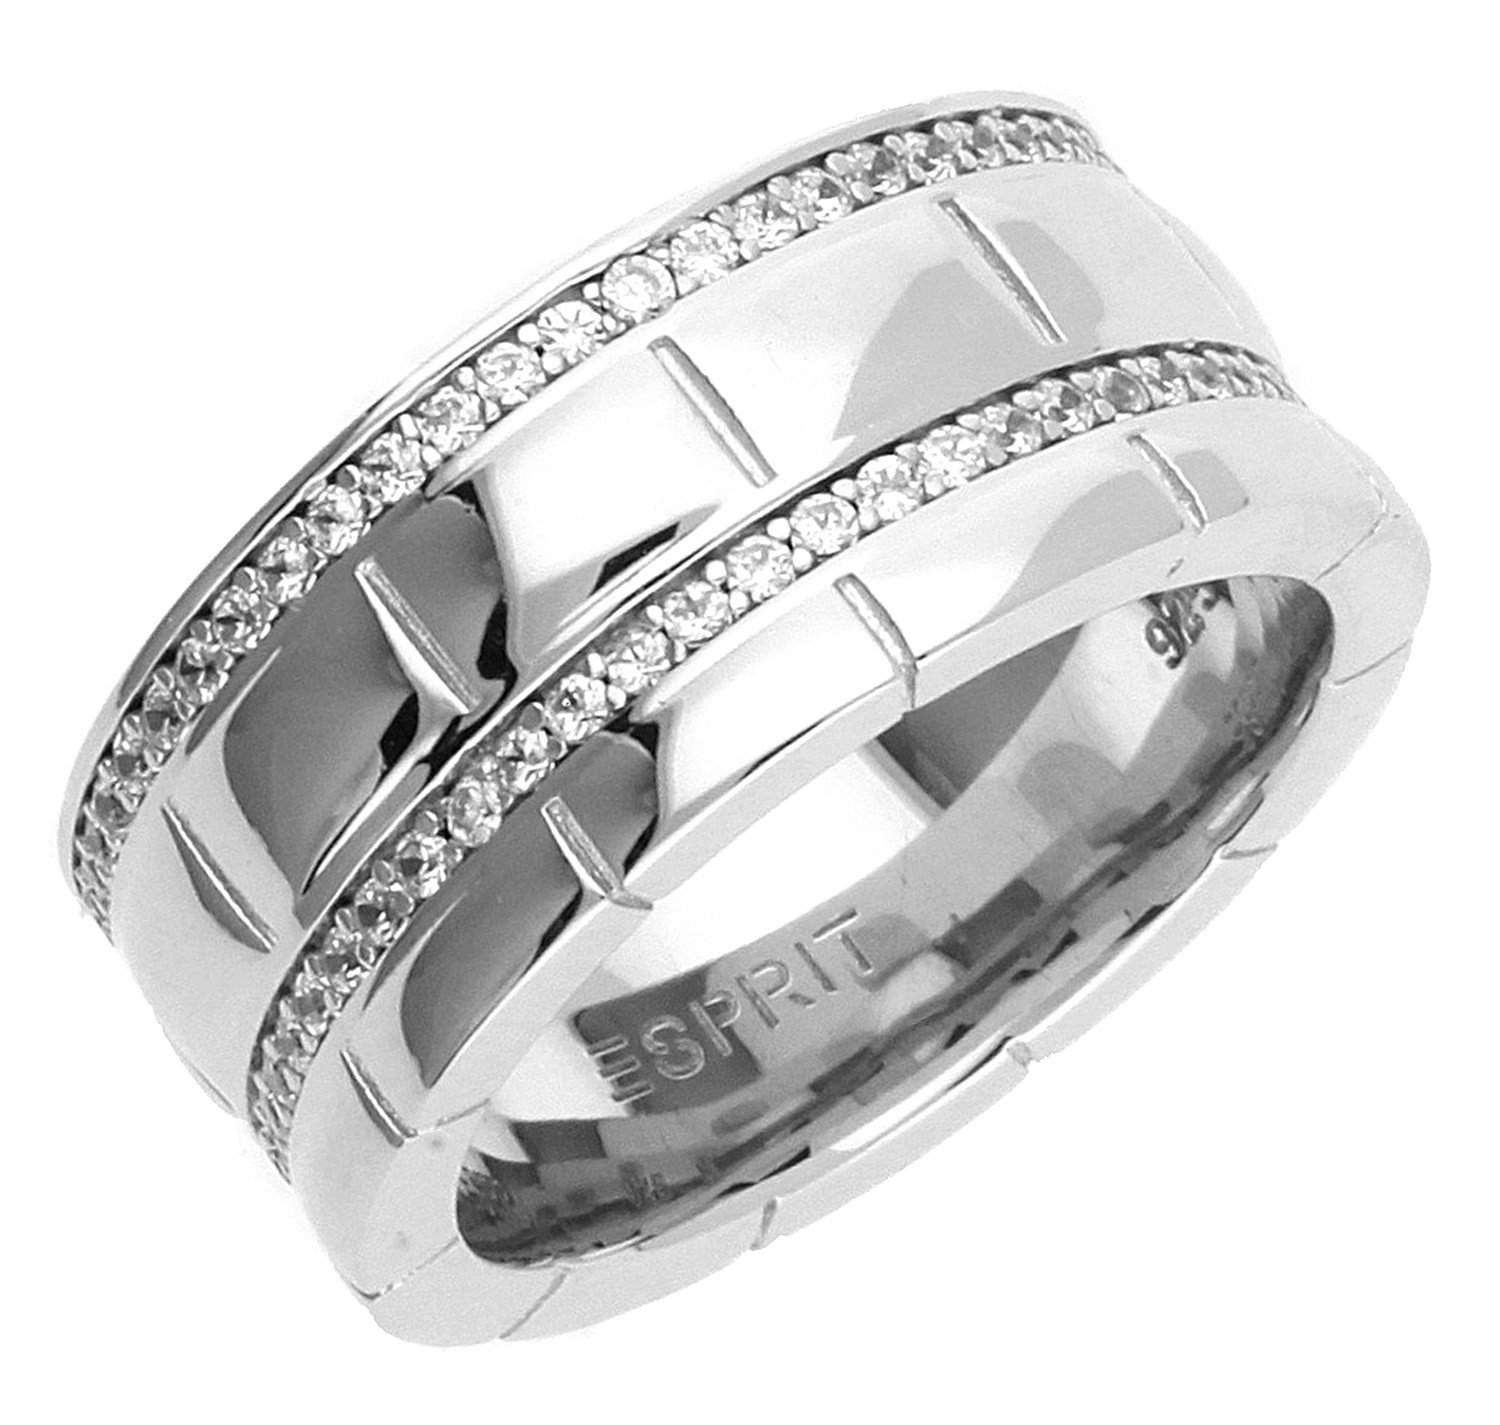 Damen Ring Silber Pure Houston Zirkonia ESRG91524A1